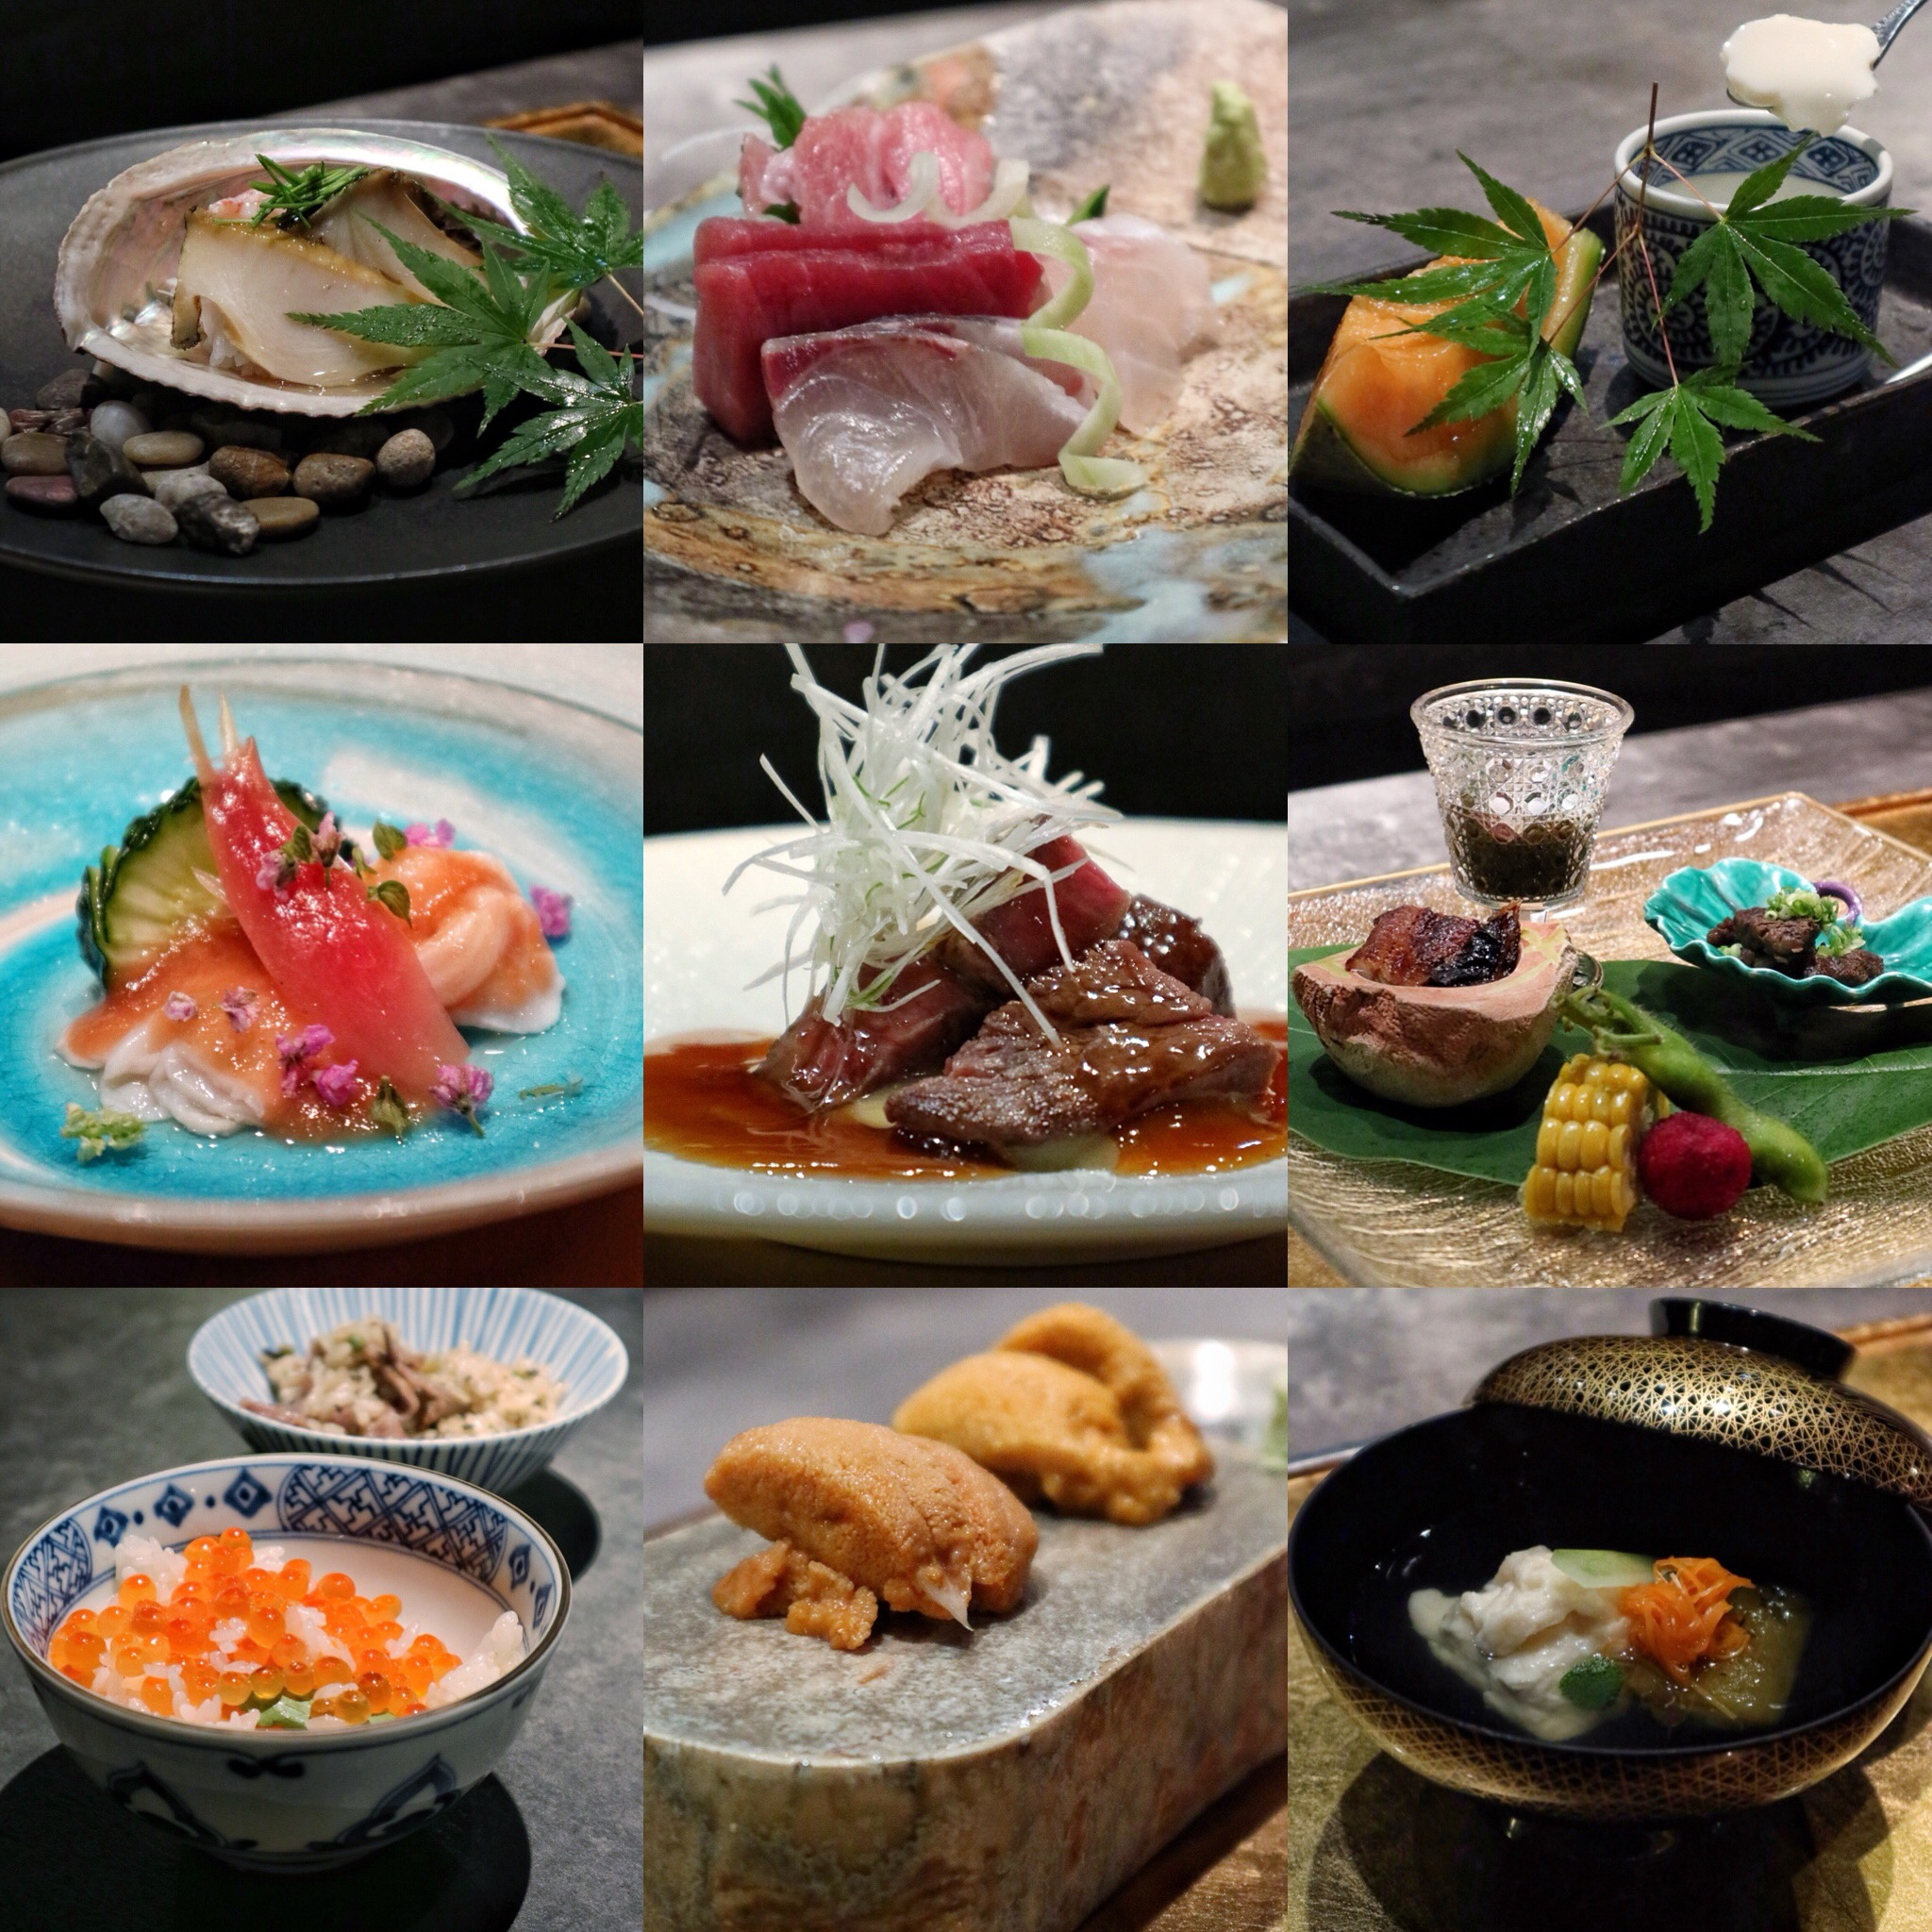 Kappo Shunsui: This Omakase Restaurant is so SECRETIVE, you need to access a Biometric Scanner to get in!